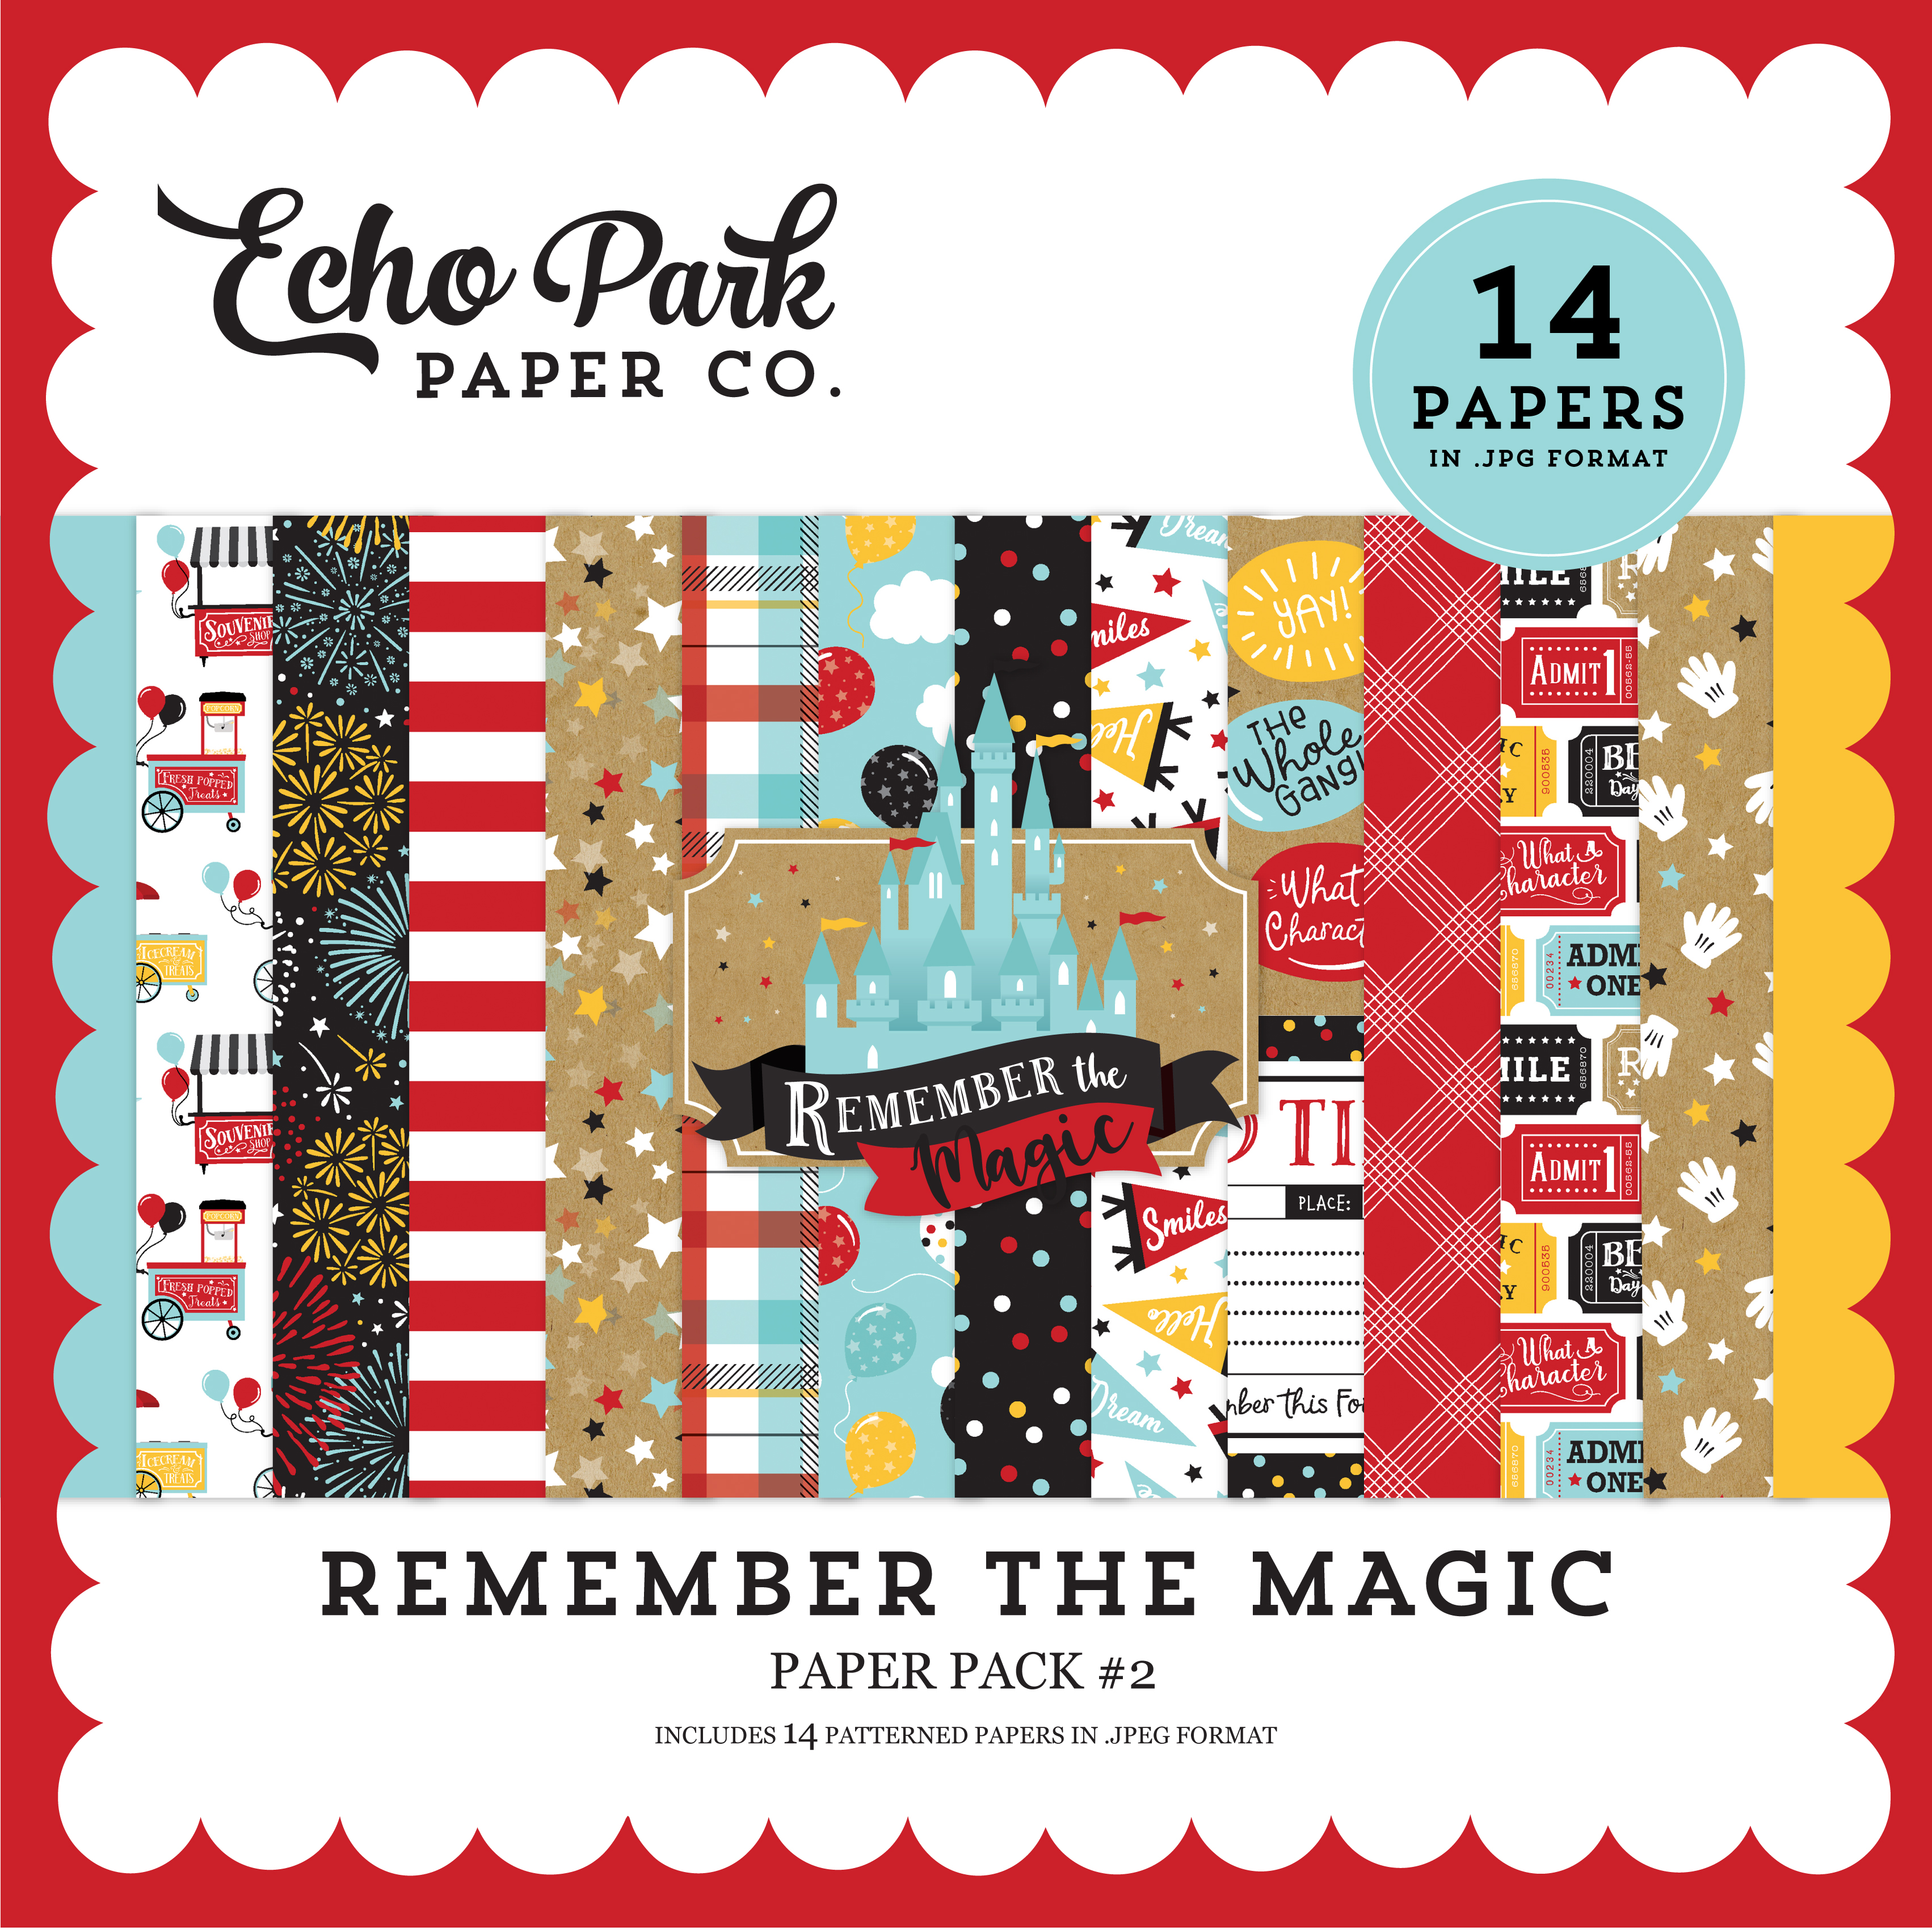 Remember the Magic Paper Pack #2